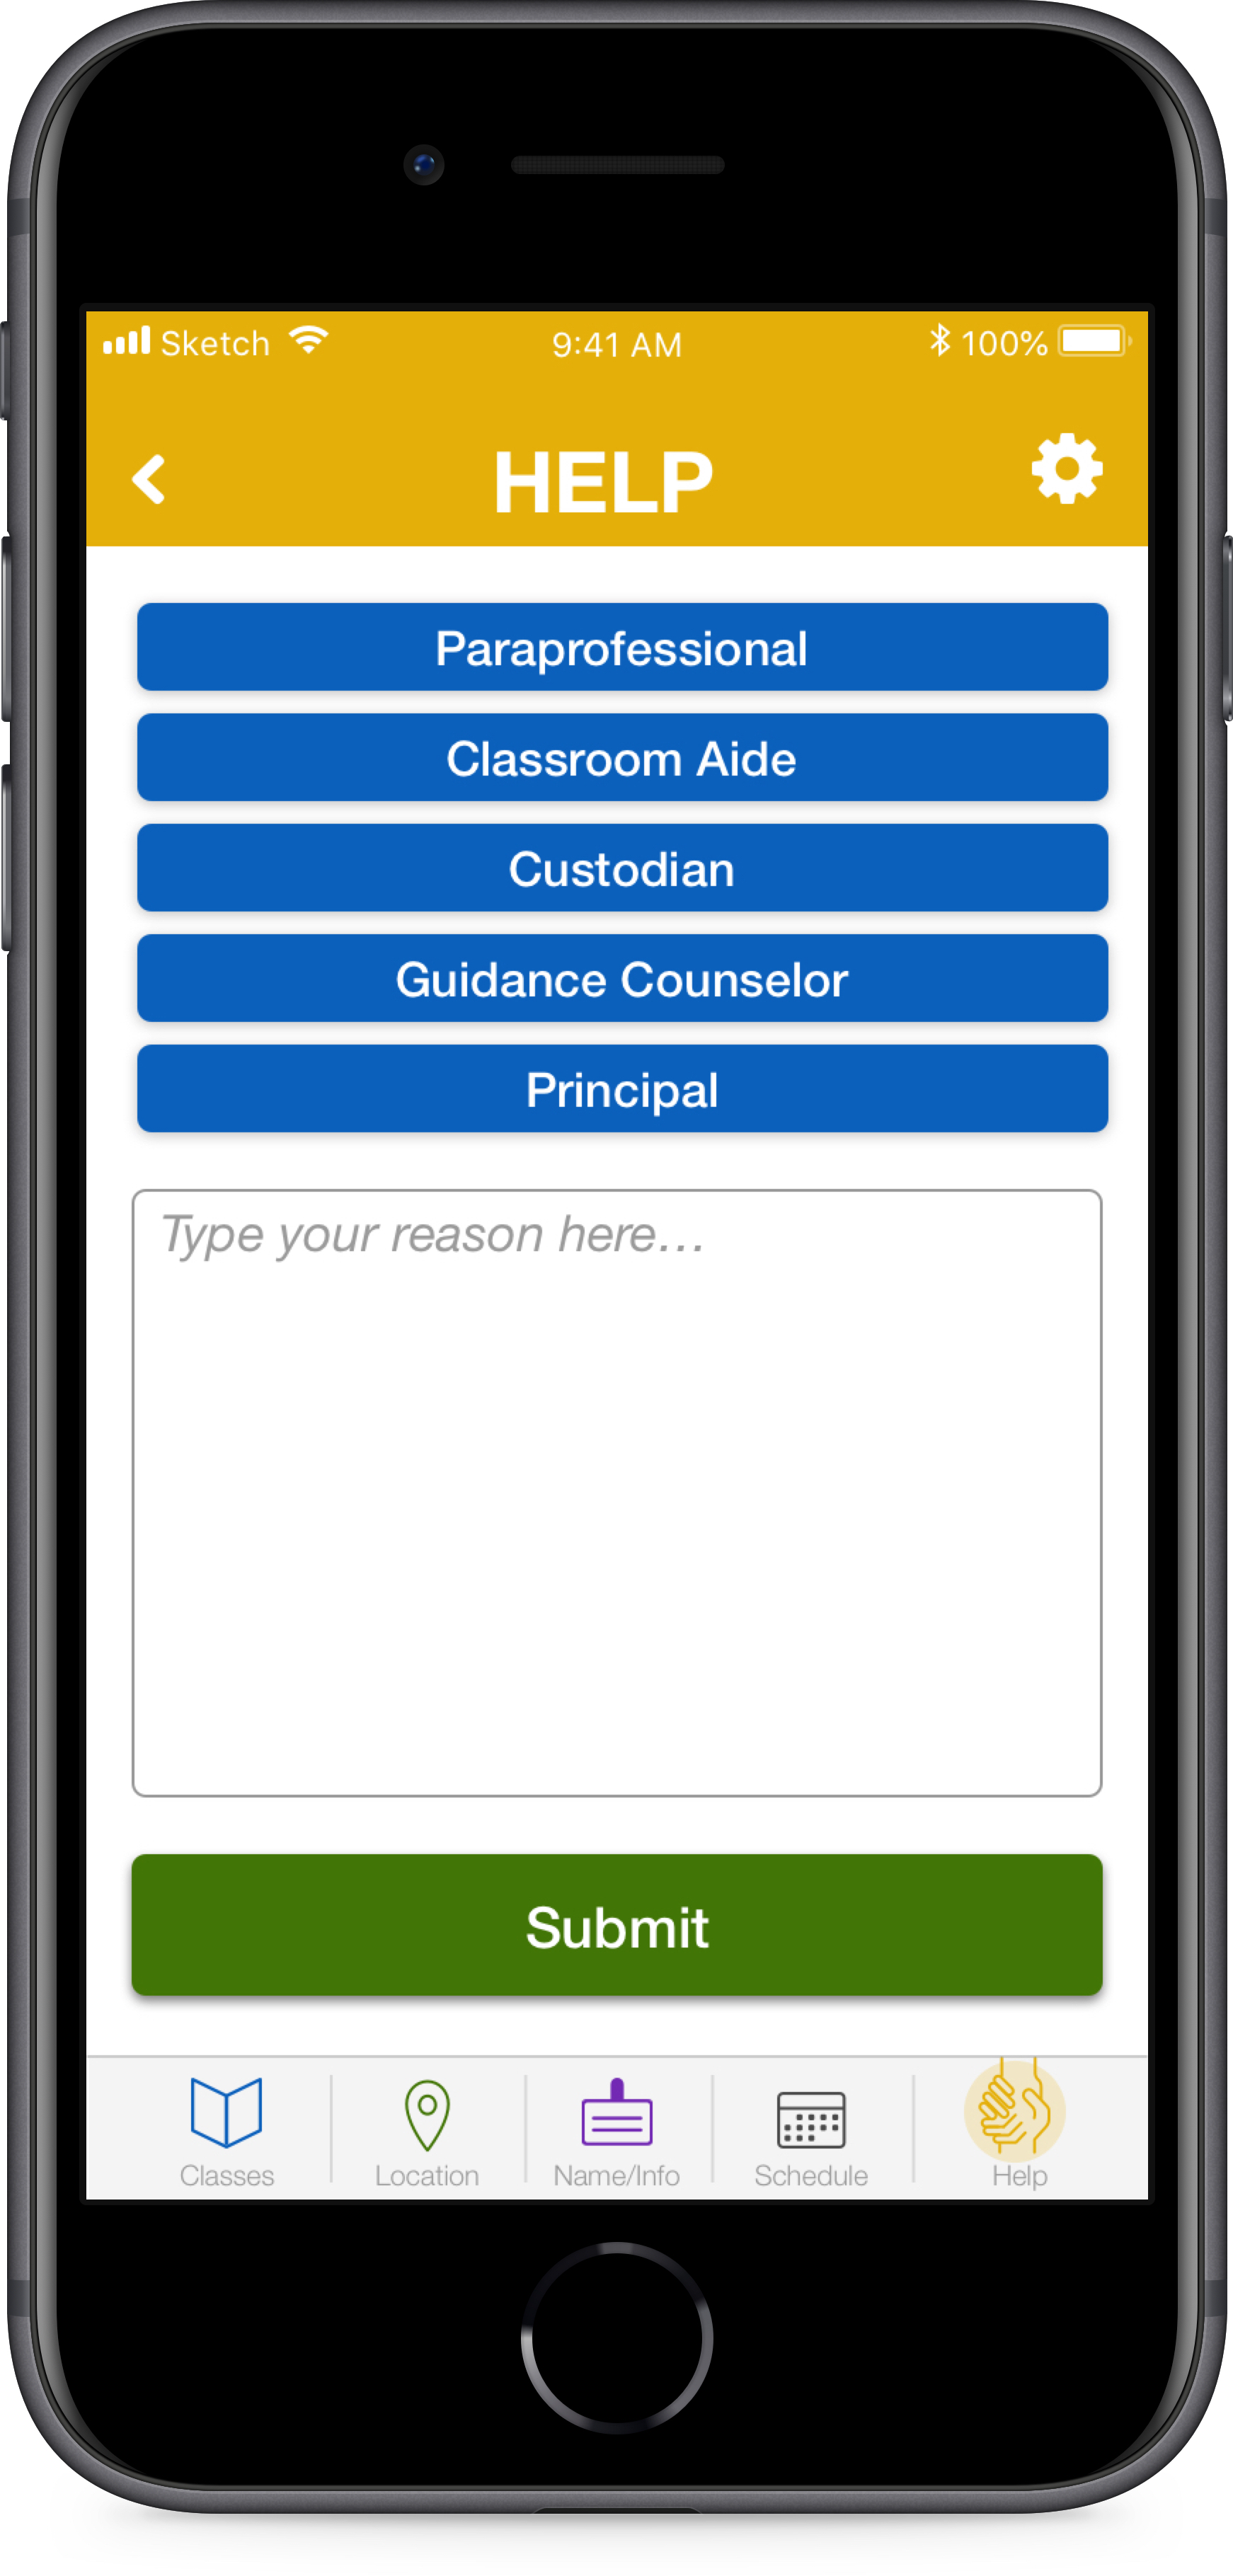 Sometimes  teachers being trapped in their classrooms  with a number of kids and no other adults. TeacherTracker would  give teachers an efficient way of explaining the issue and calling for the appropriate help .